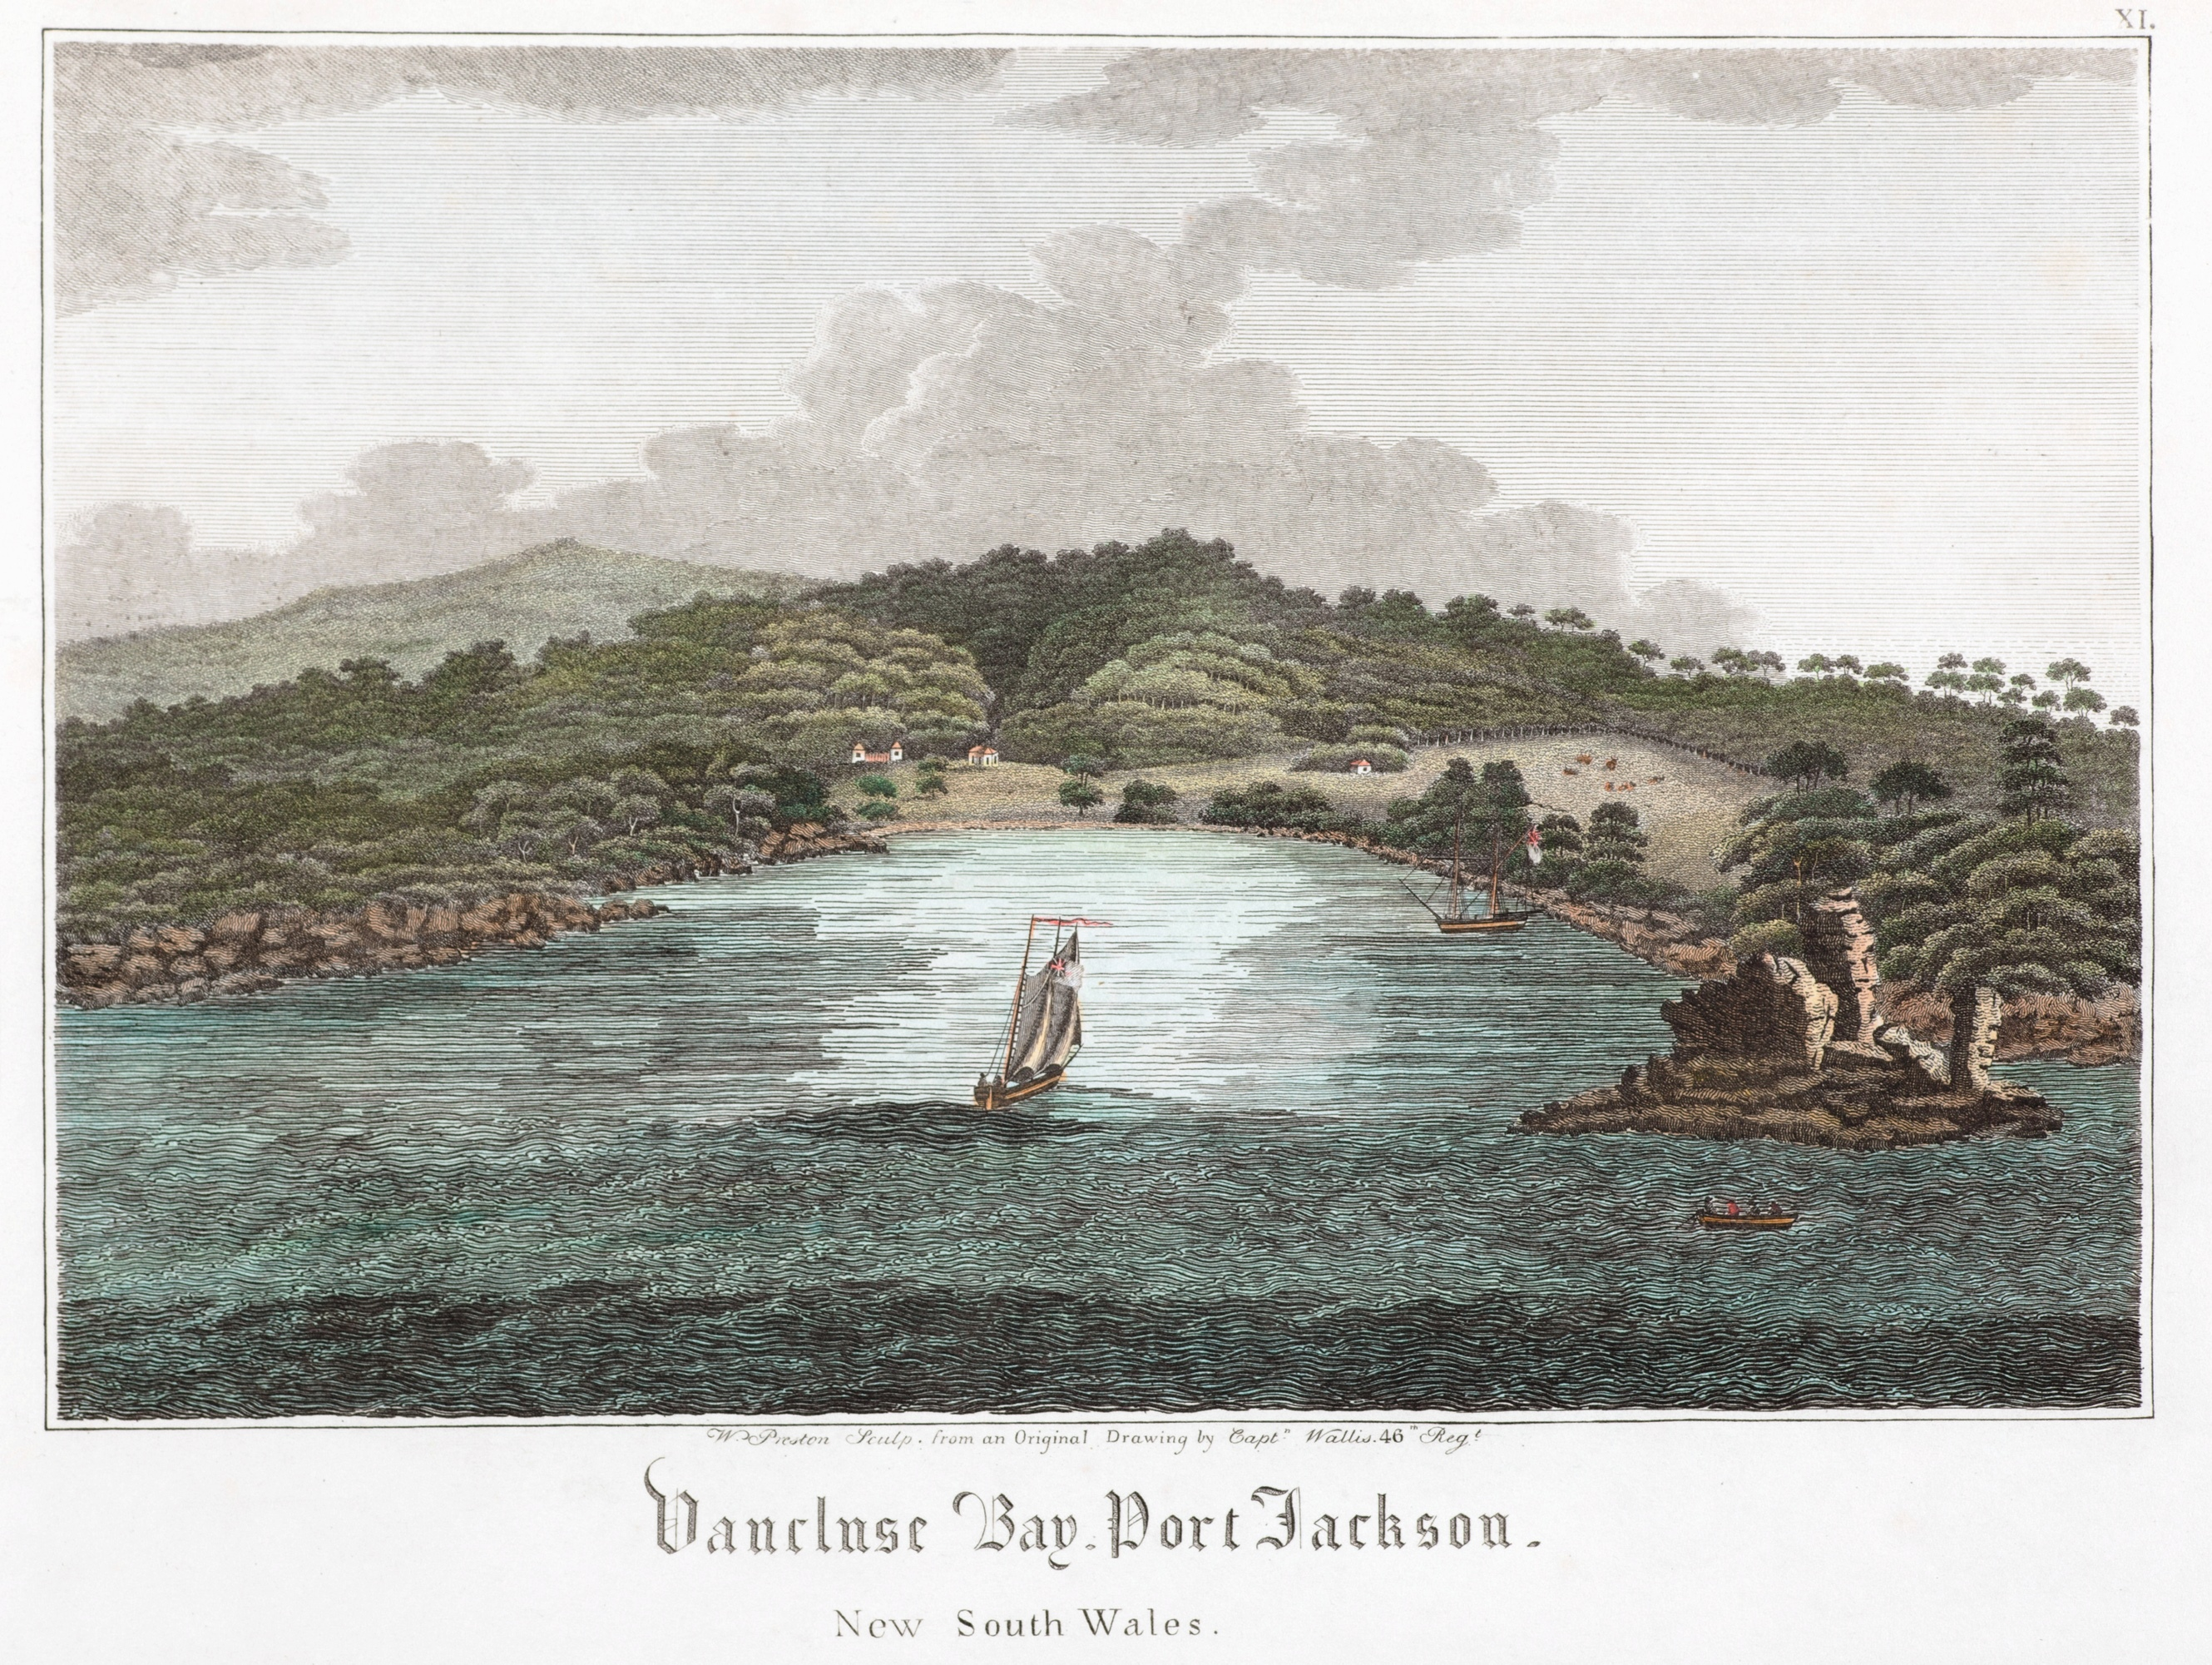 Vaucluse Bay, Port Jackson, New South Wales, 1820 / engraved by Walter Preston, from a drawing by James Wallis